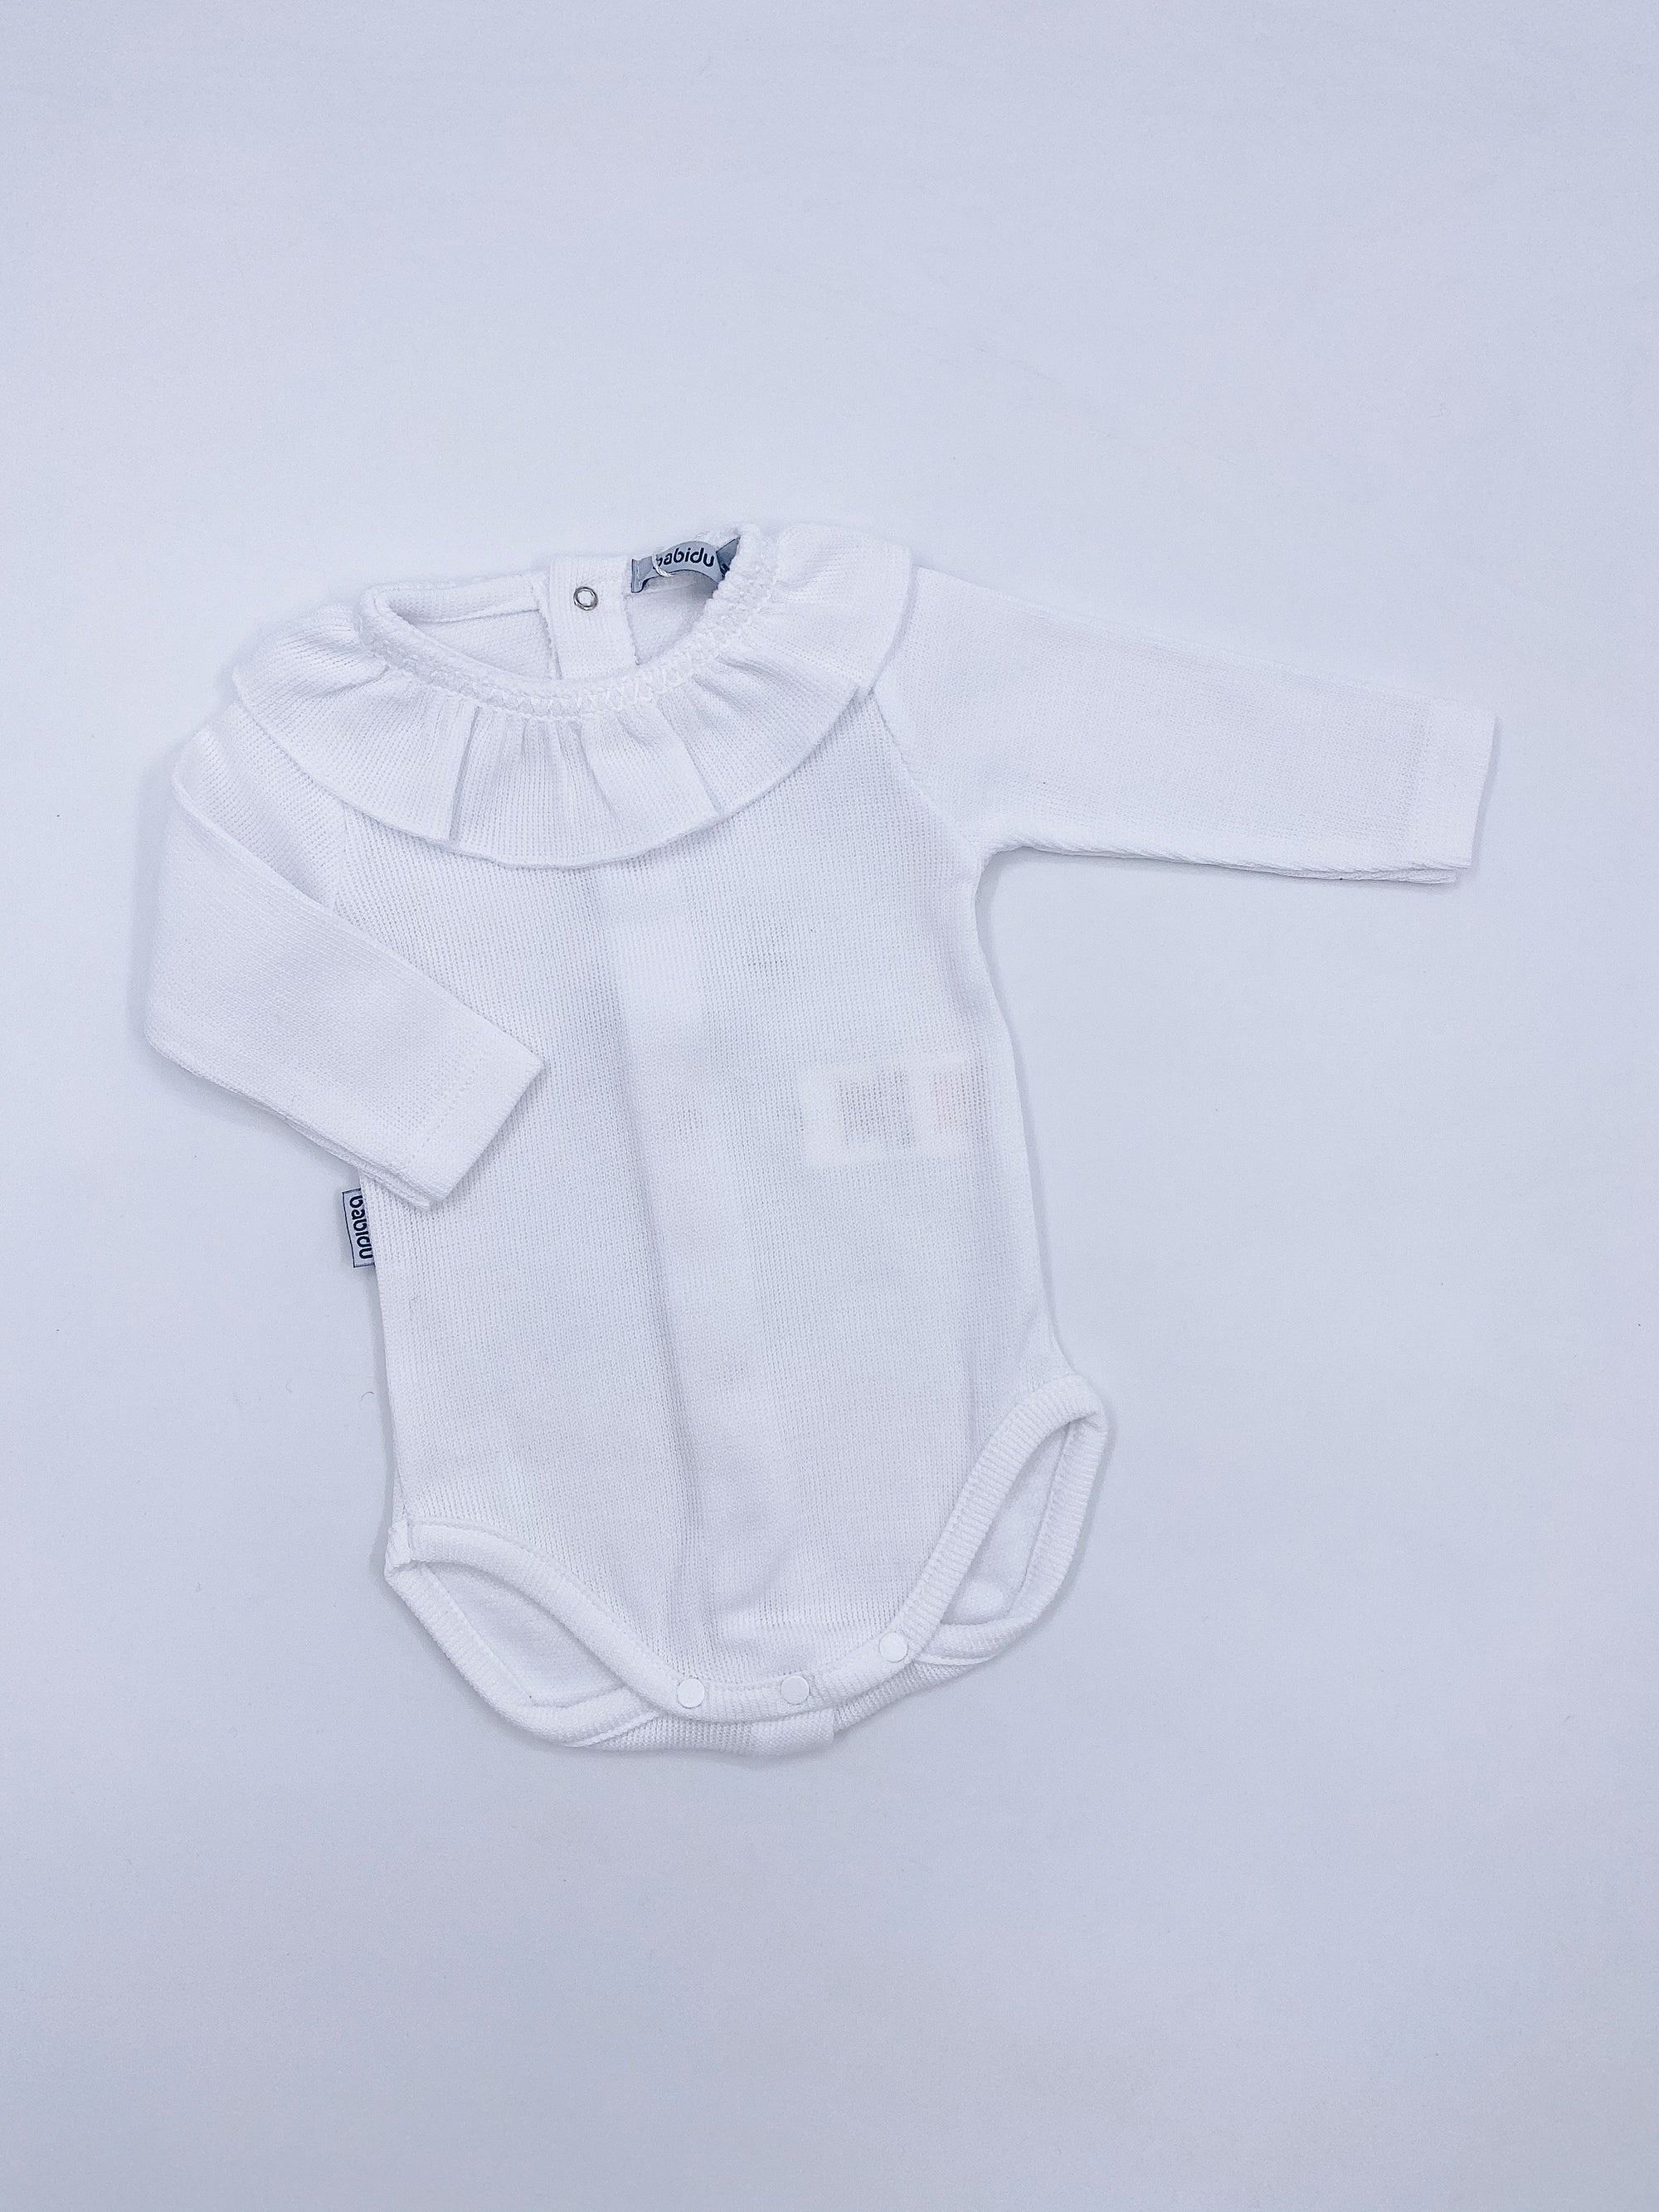 White cotton bodysuit with beautiful frilly neck details